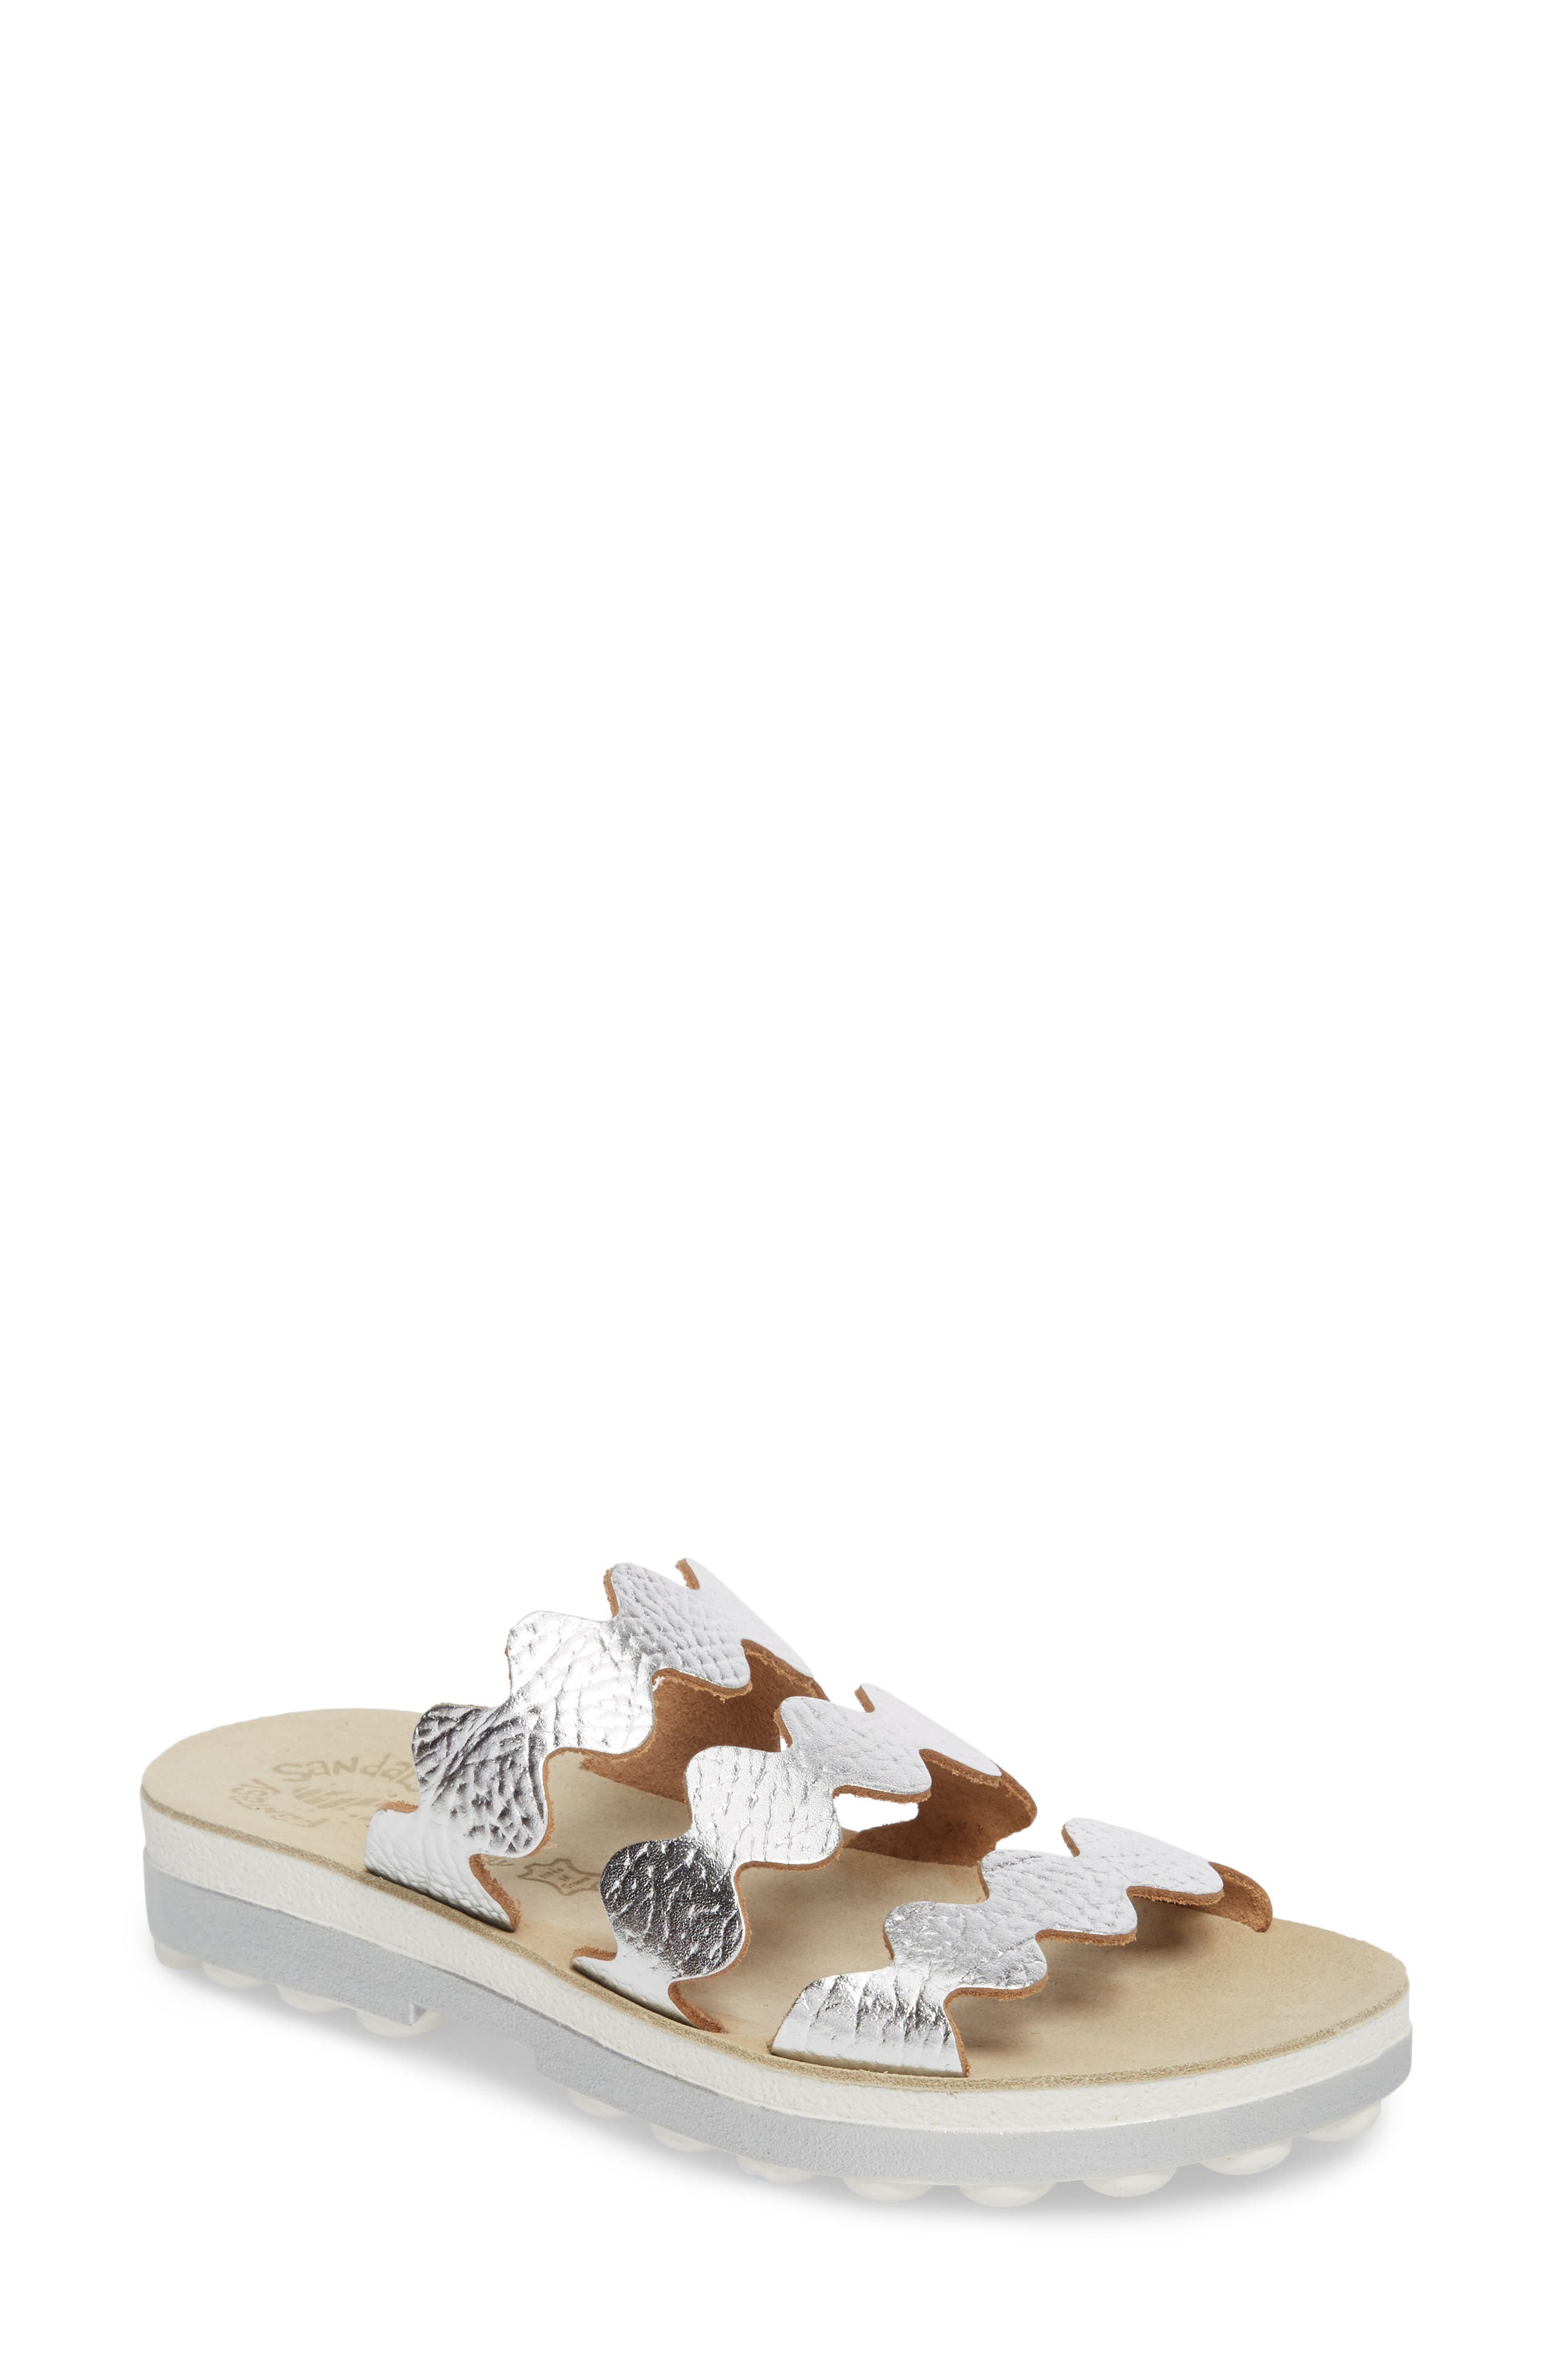 Waves Slide Sandal,                         Main,                         color, SILVER VOLCANO LEATHER